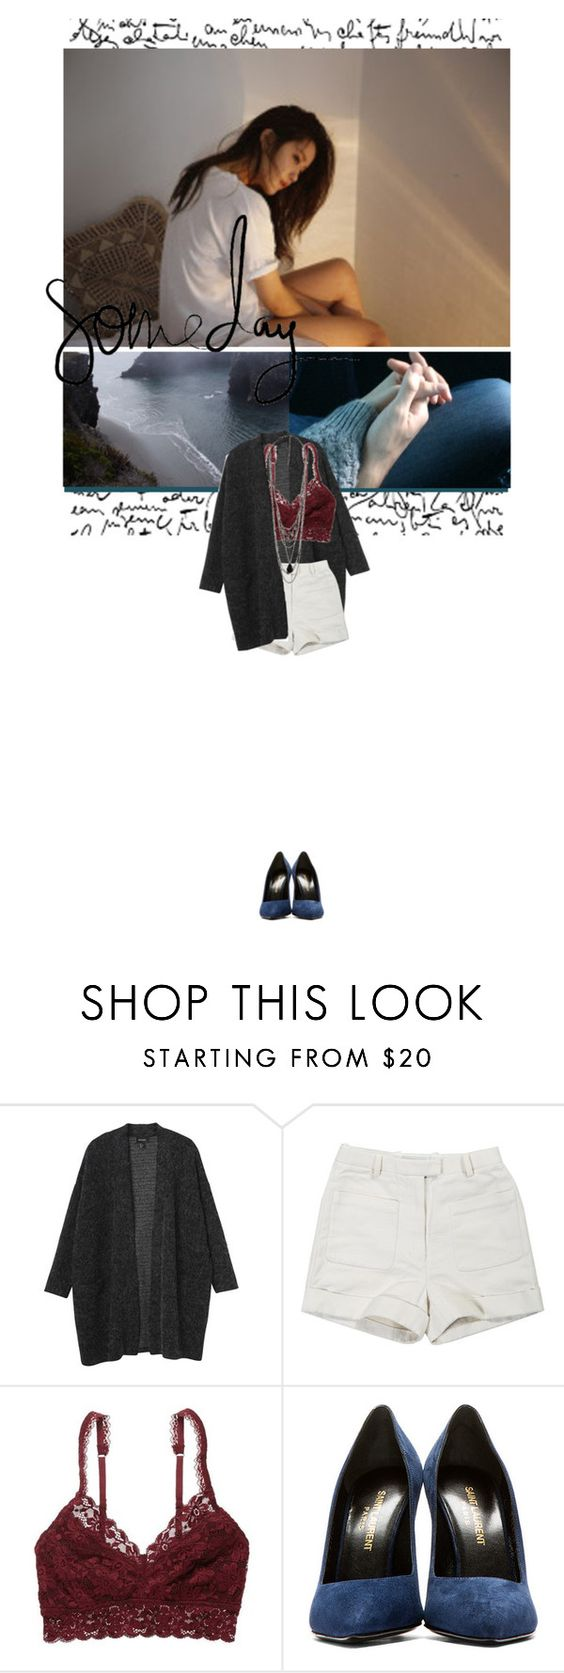 """Over Again"" by tanyahantak ❤ liked on Polyvore featuring Religion Clothing, Monki, 3.1 Phillip Lim, American Eagle Outfitters, Yves Saint Laurent and Forever 21"